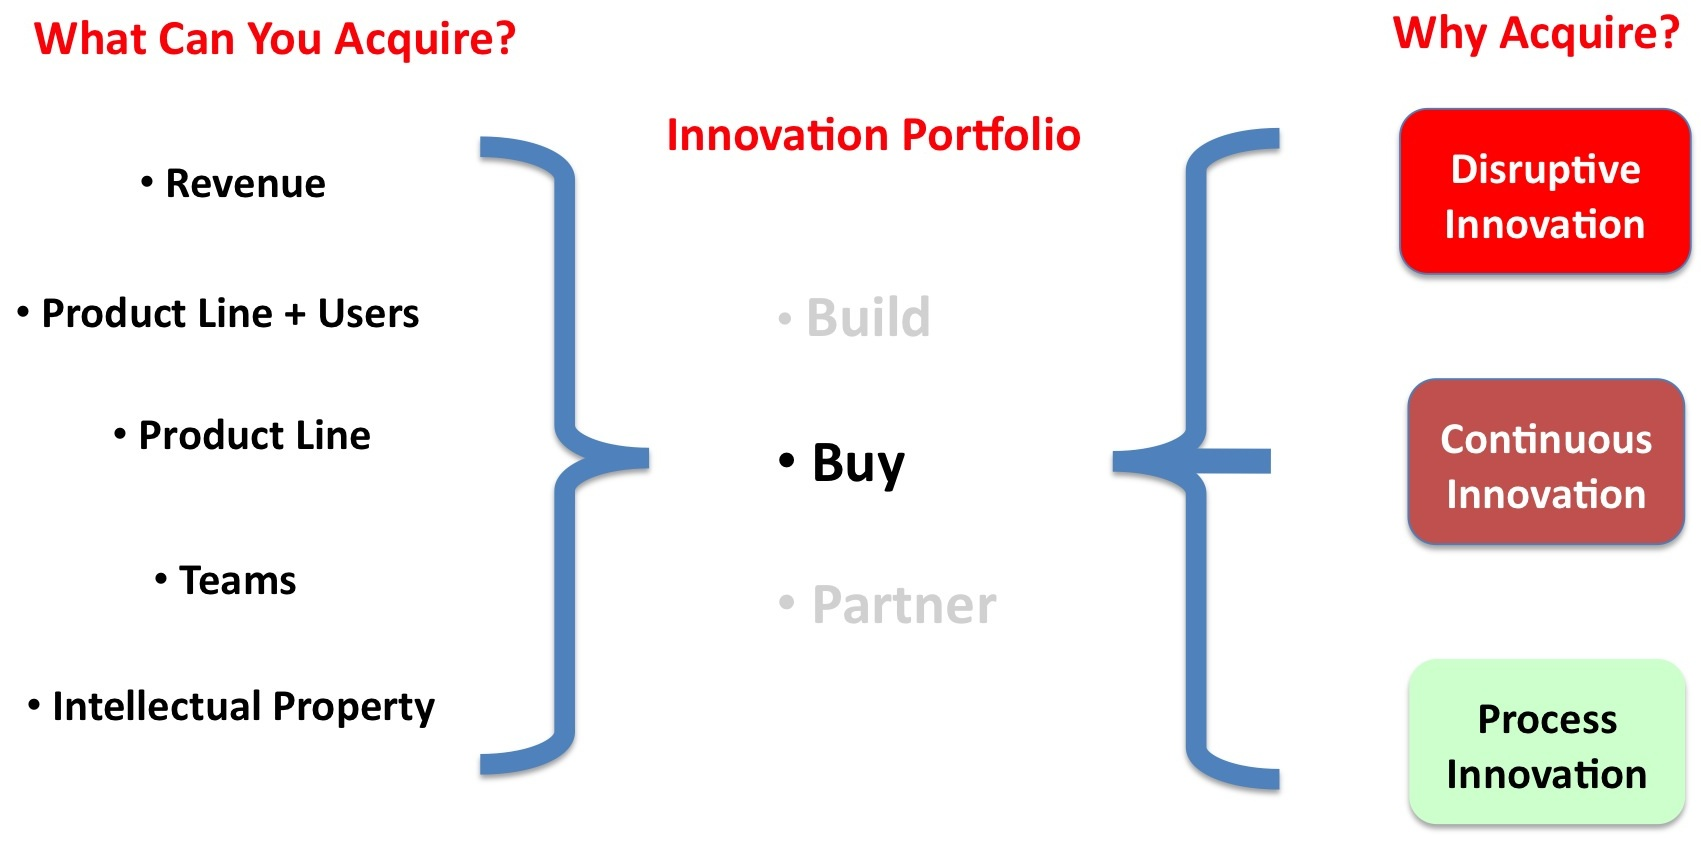 http://steveblank.files.wordpress.com/2014/04/buying-innovation-pipeline2.jpg